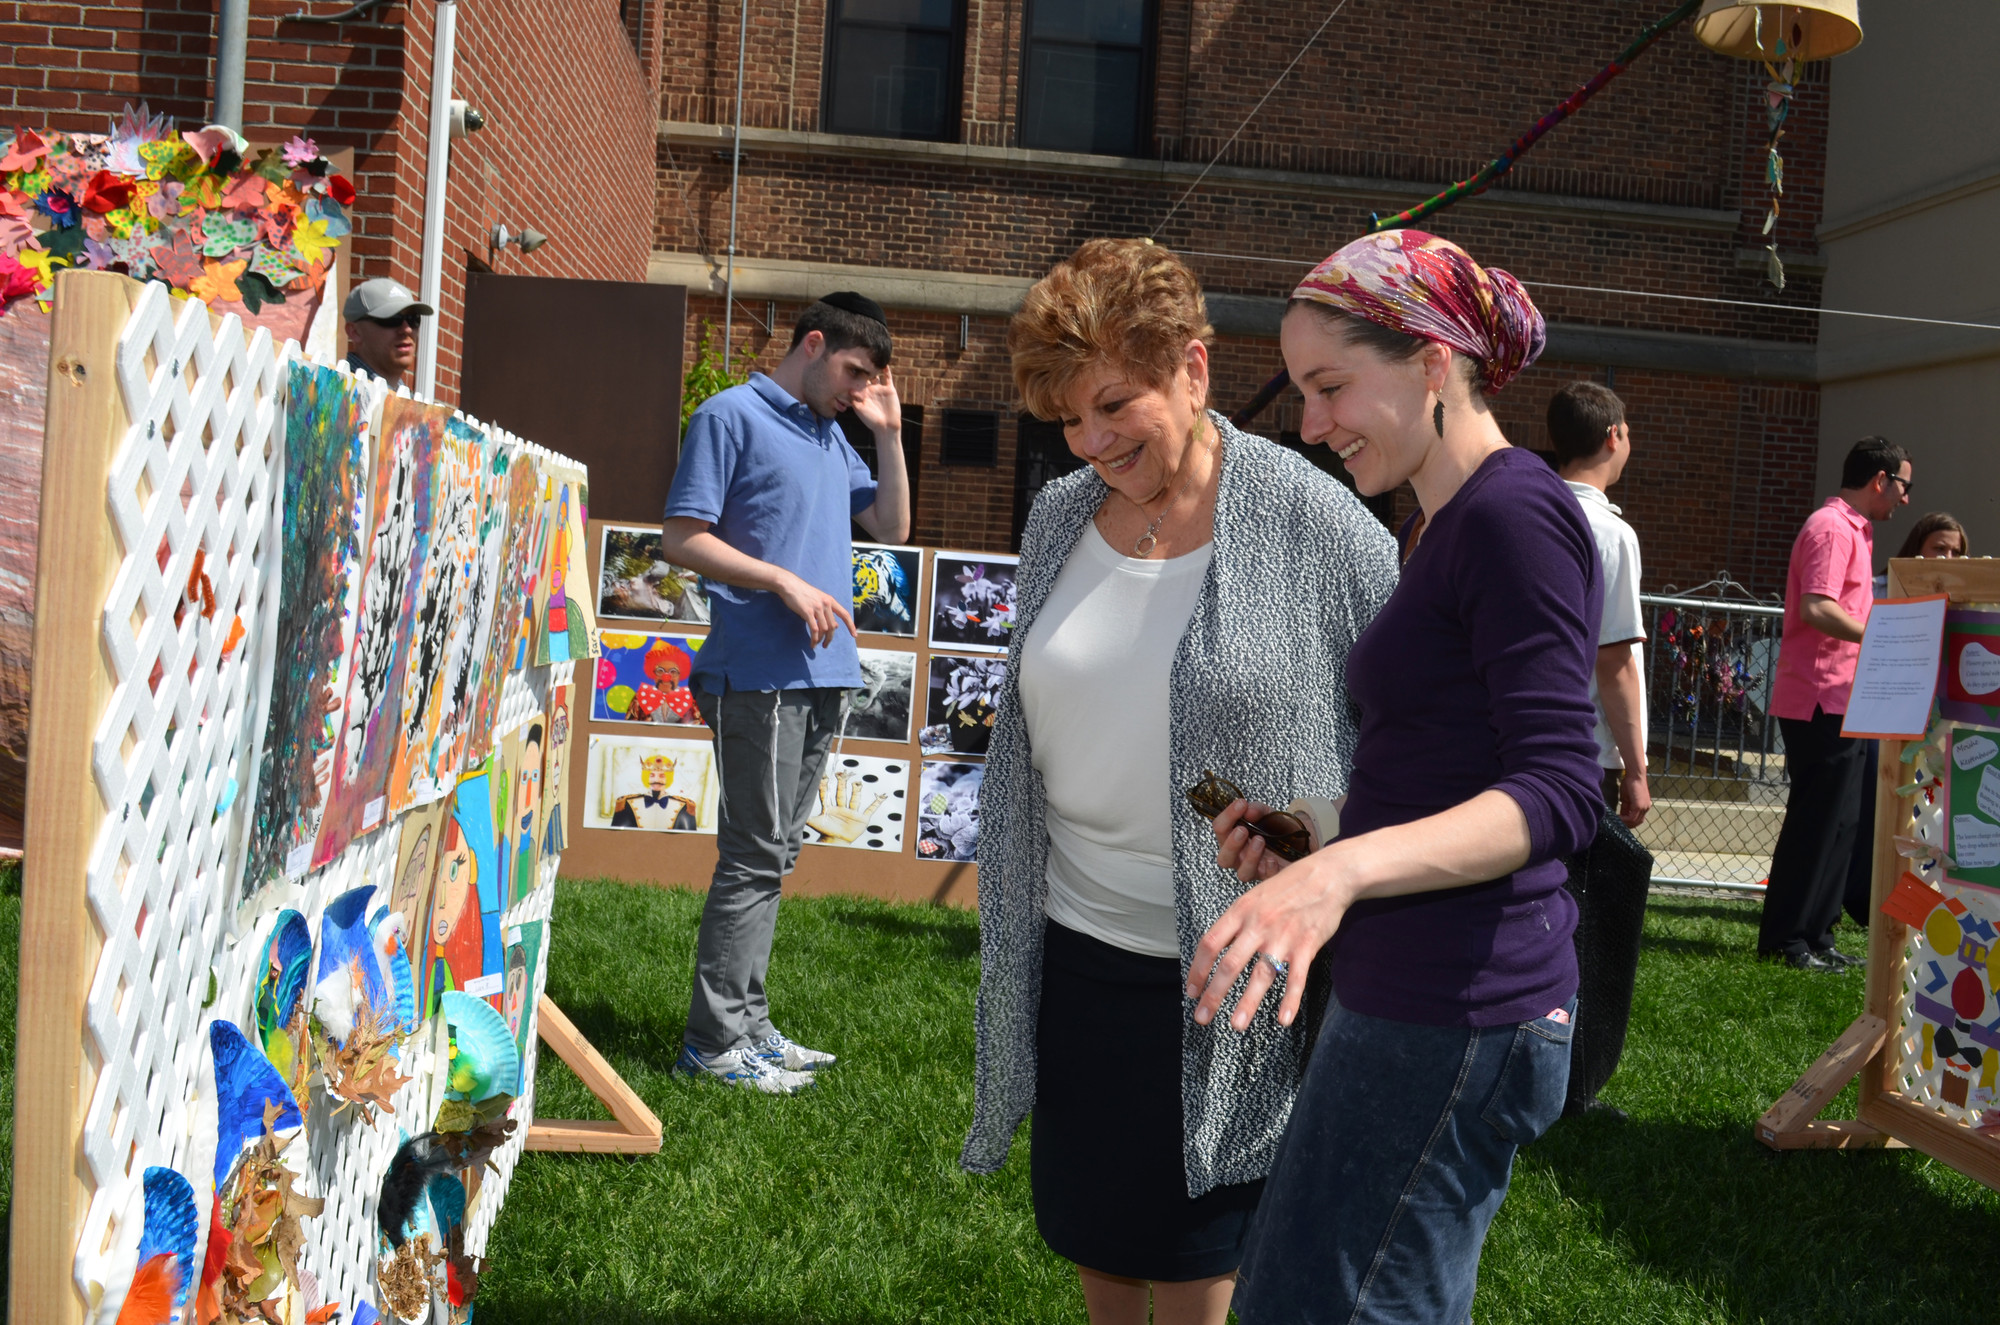 Art therapist Sara Haimoff with her grandmother, Elaine Rosengarten, left, viewed the art work at Kulanu's festival.